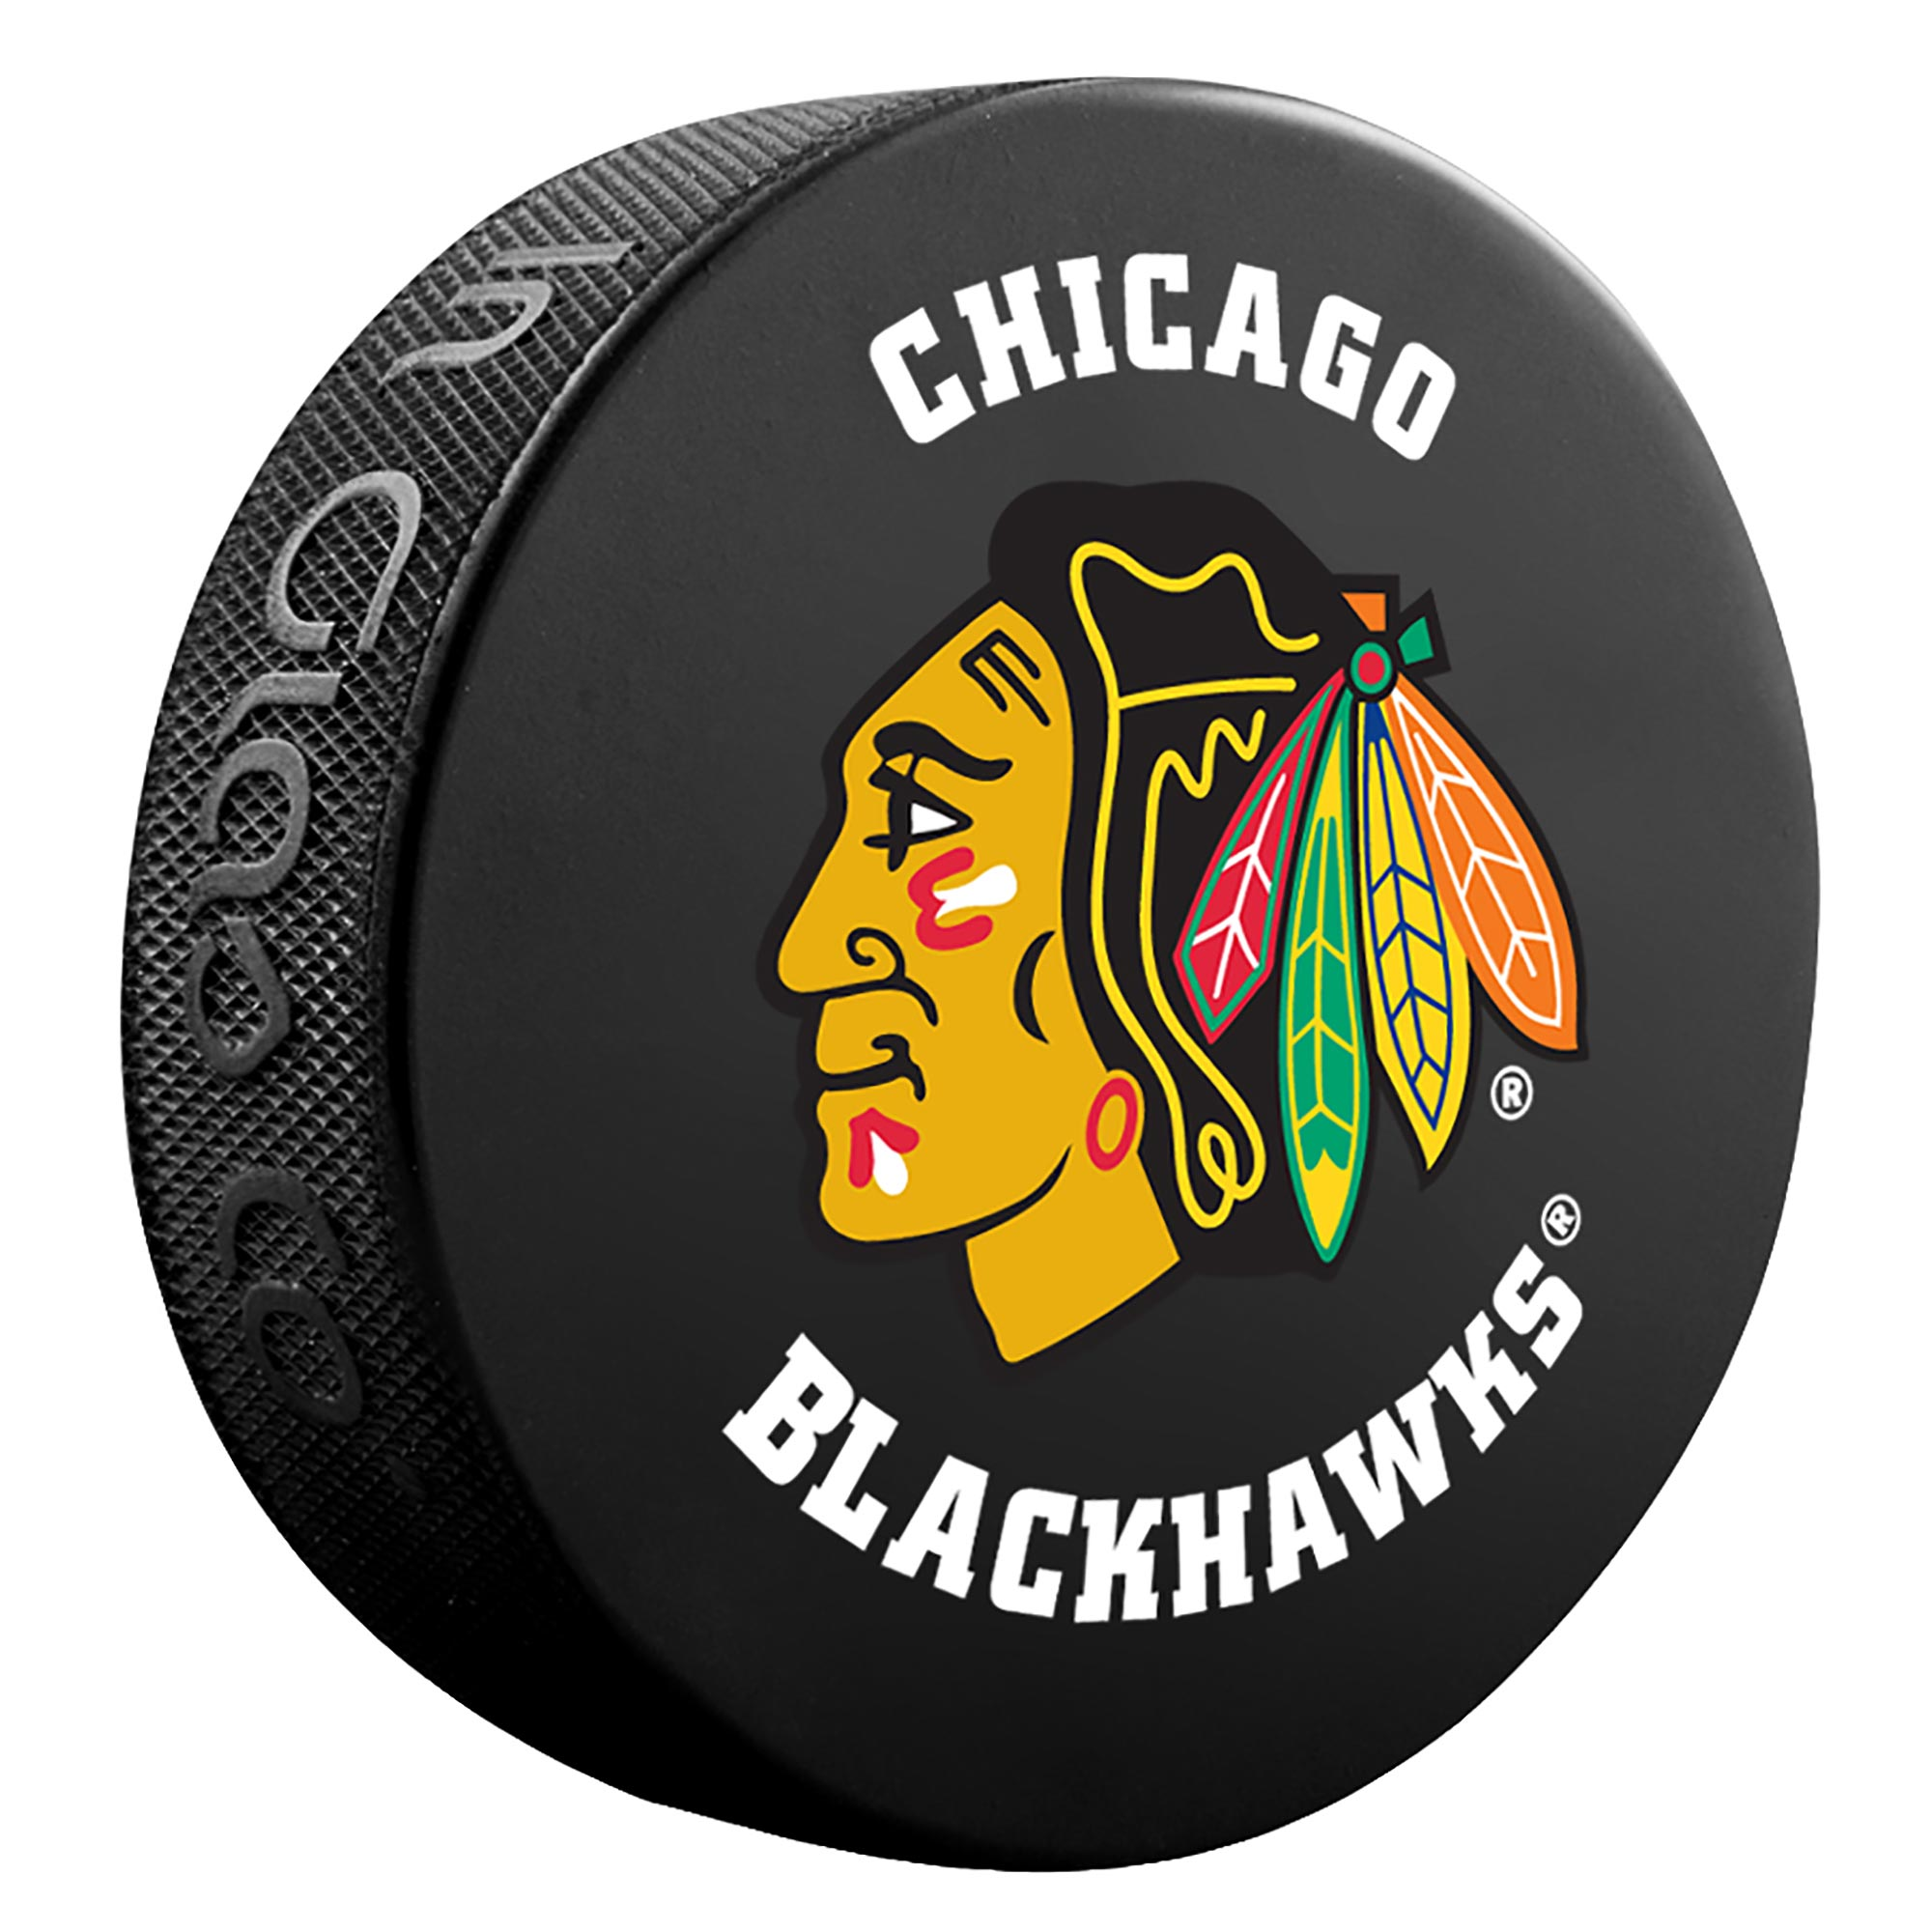 Chicago Blackhawks Team Puck